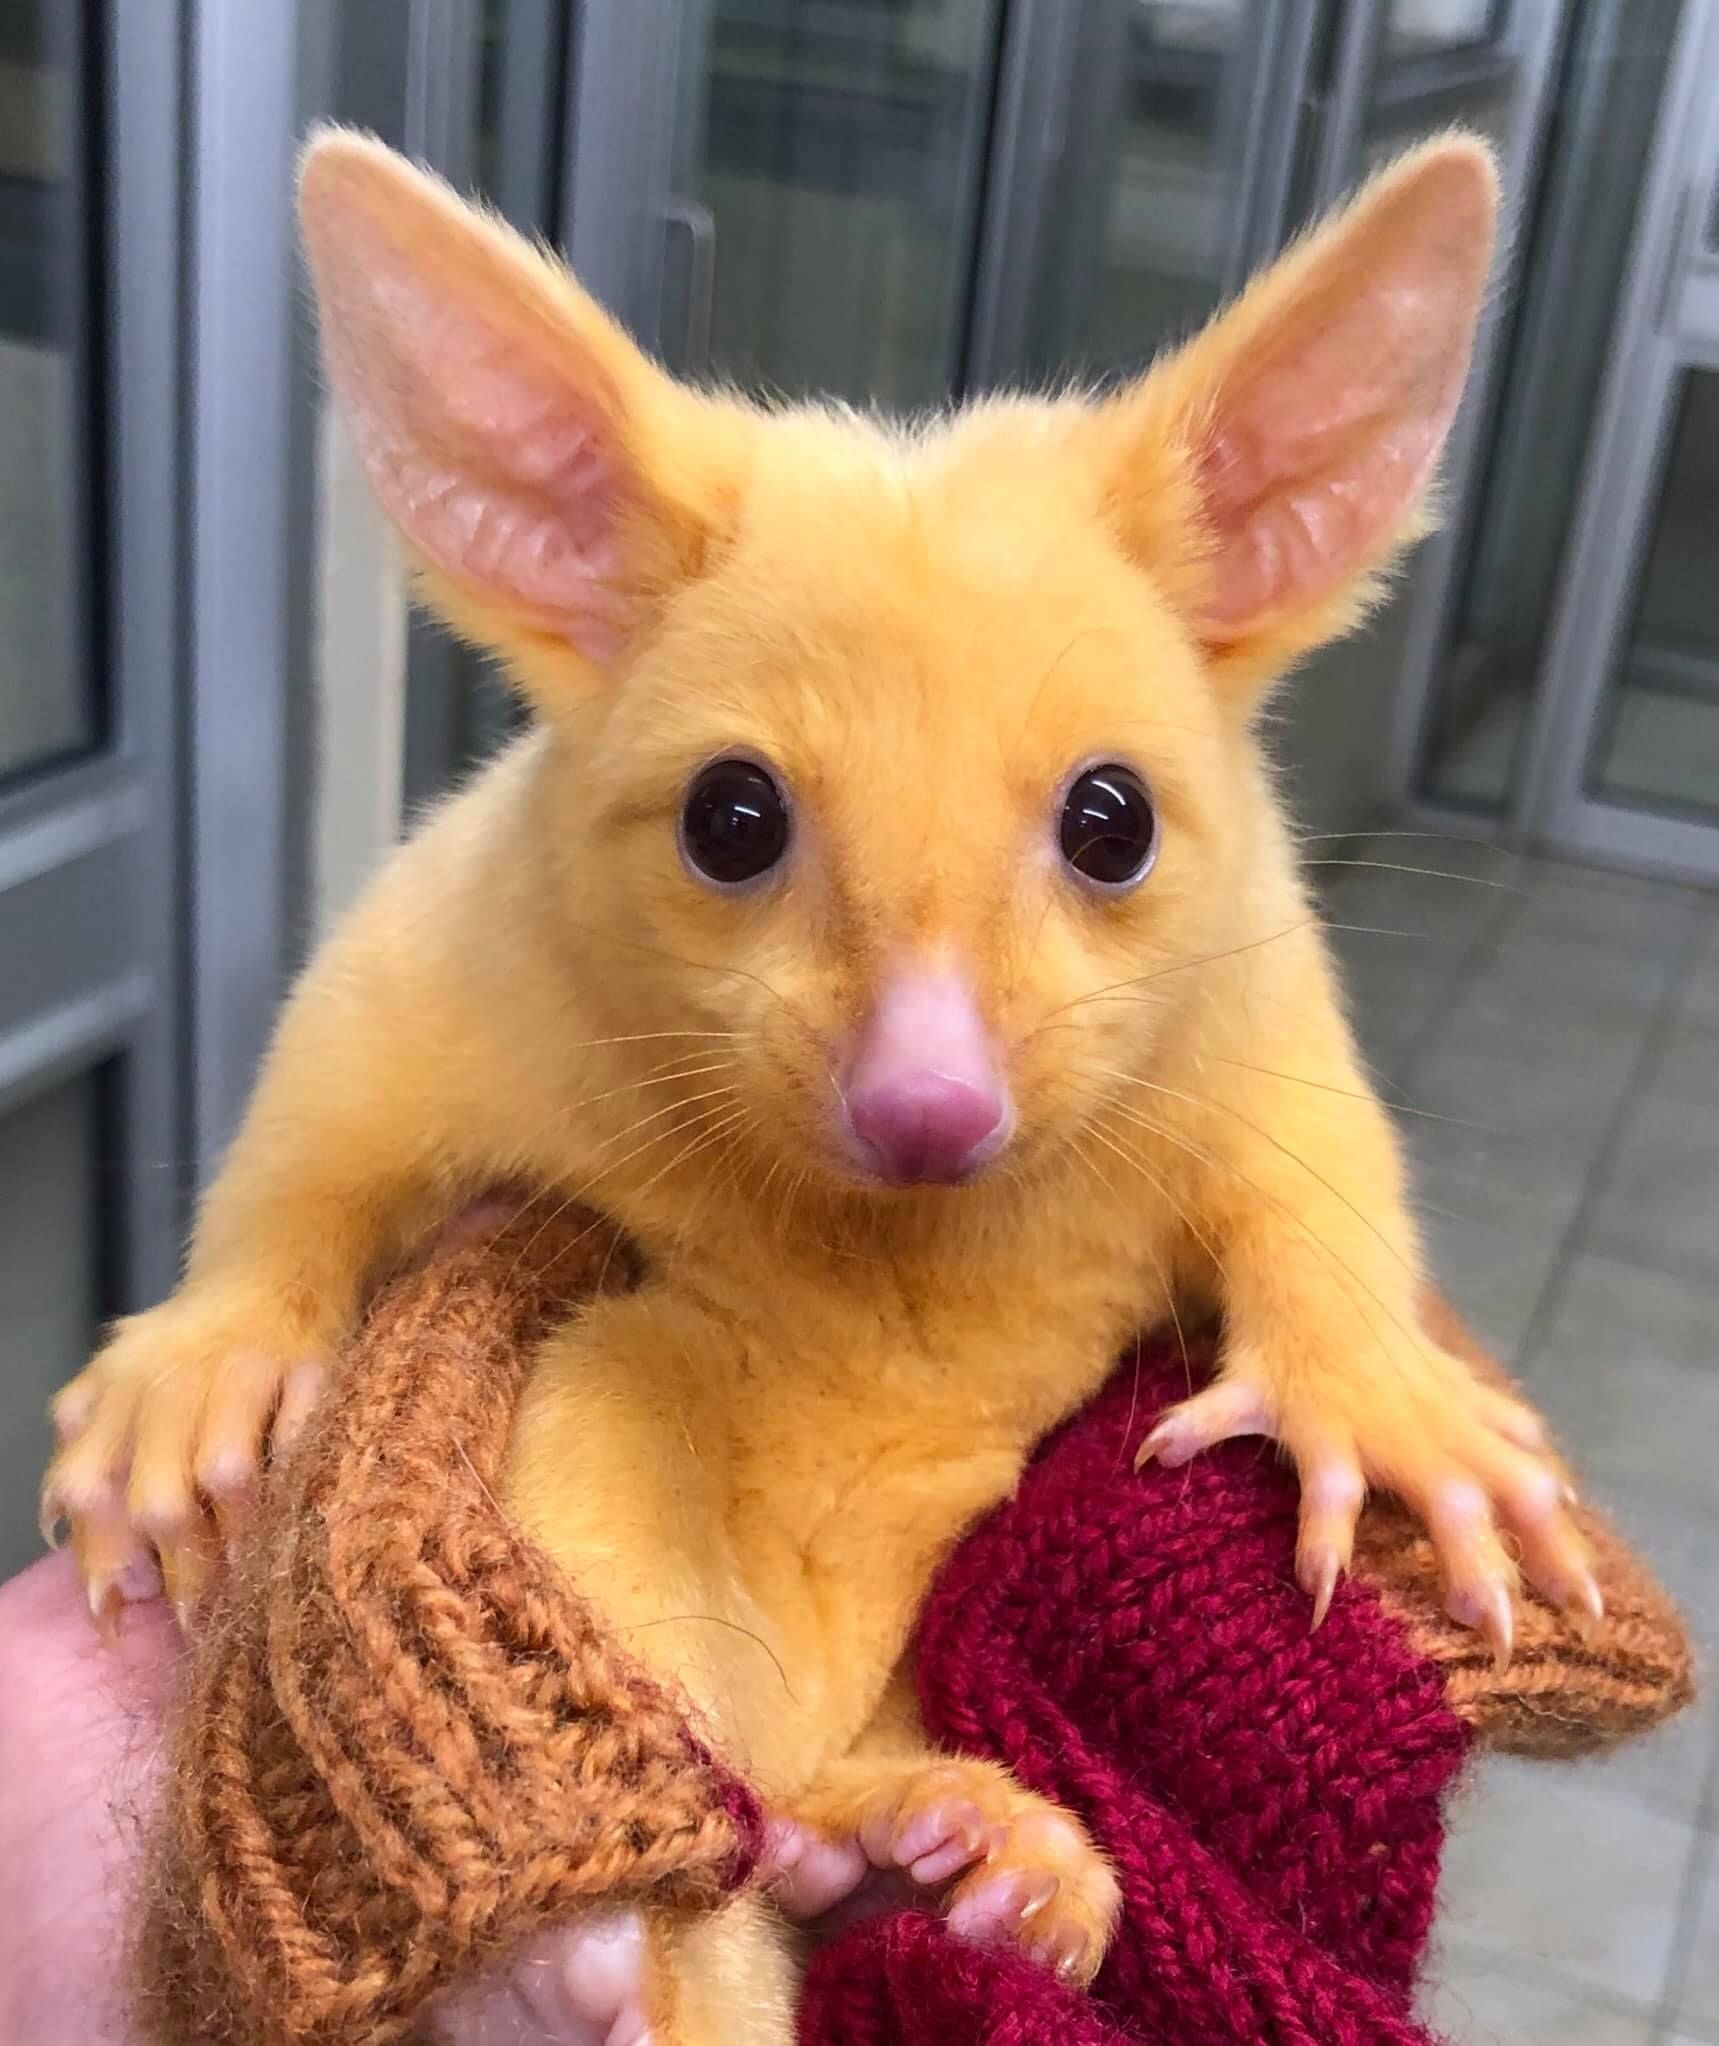 Vet Clinic Rescues A Rare Golden Possum That Looks Like A Real Life Pokemon In 2020 Animals Australian Possum Cute Animals